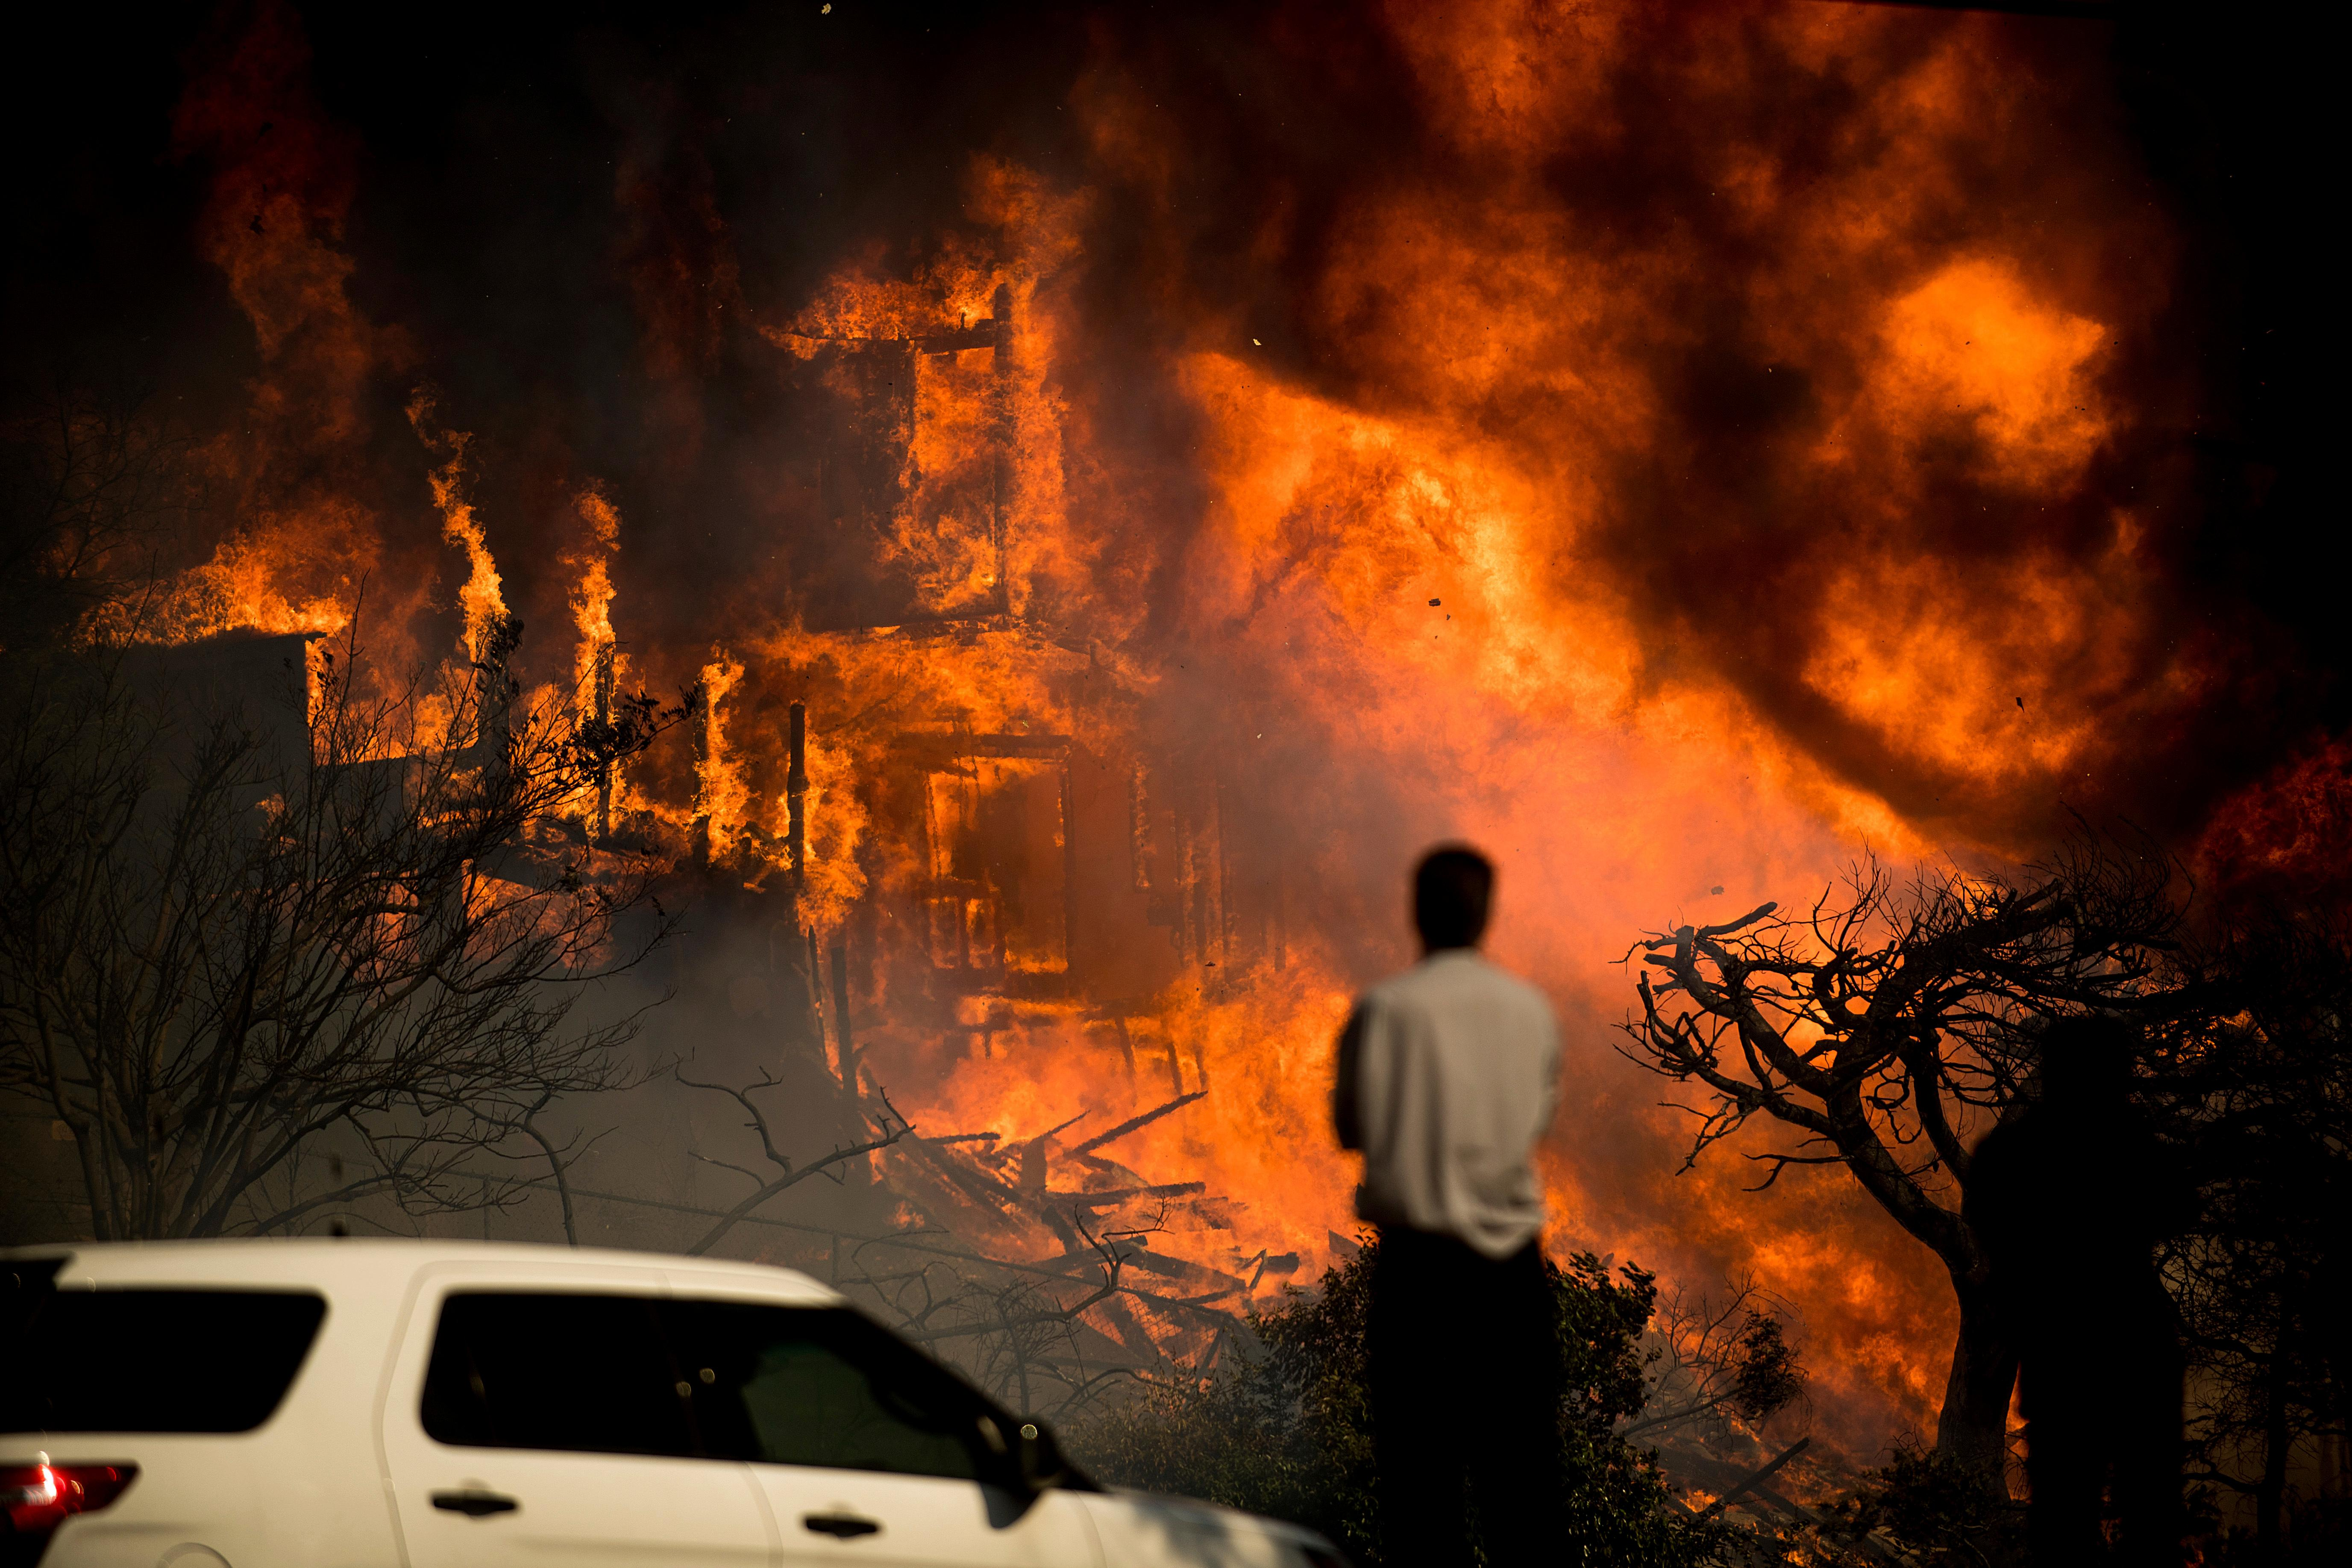 A man watches flames consume a residence as a wildfire rages in Ventura, Calif., Tuesday, Dec. 5, 2017. Ferocious winds in Southern California have whipped up explosive wildfires, burning a psychiatric hospital and scores of other structures. (AP Photo/Noah Berger)